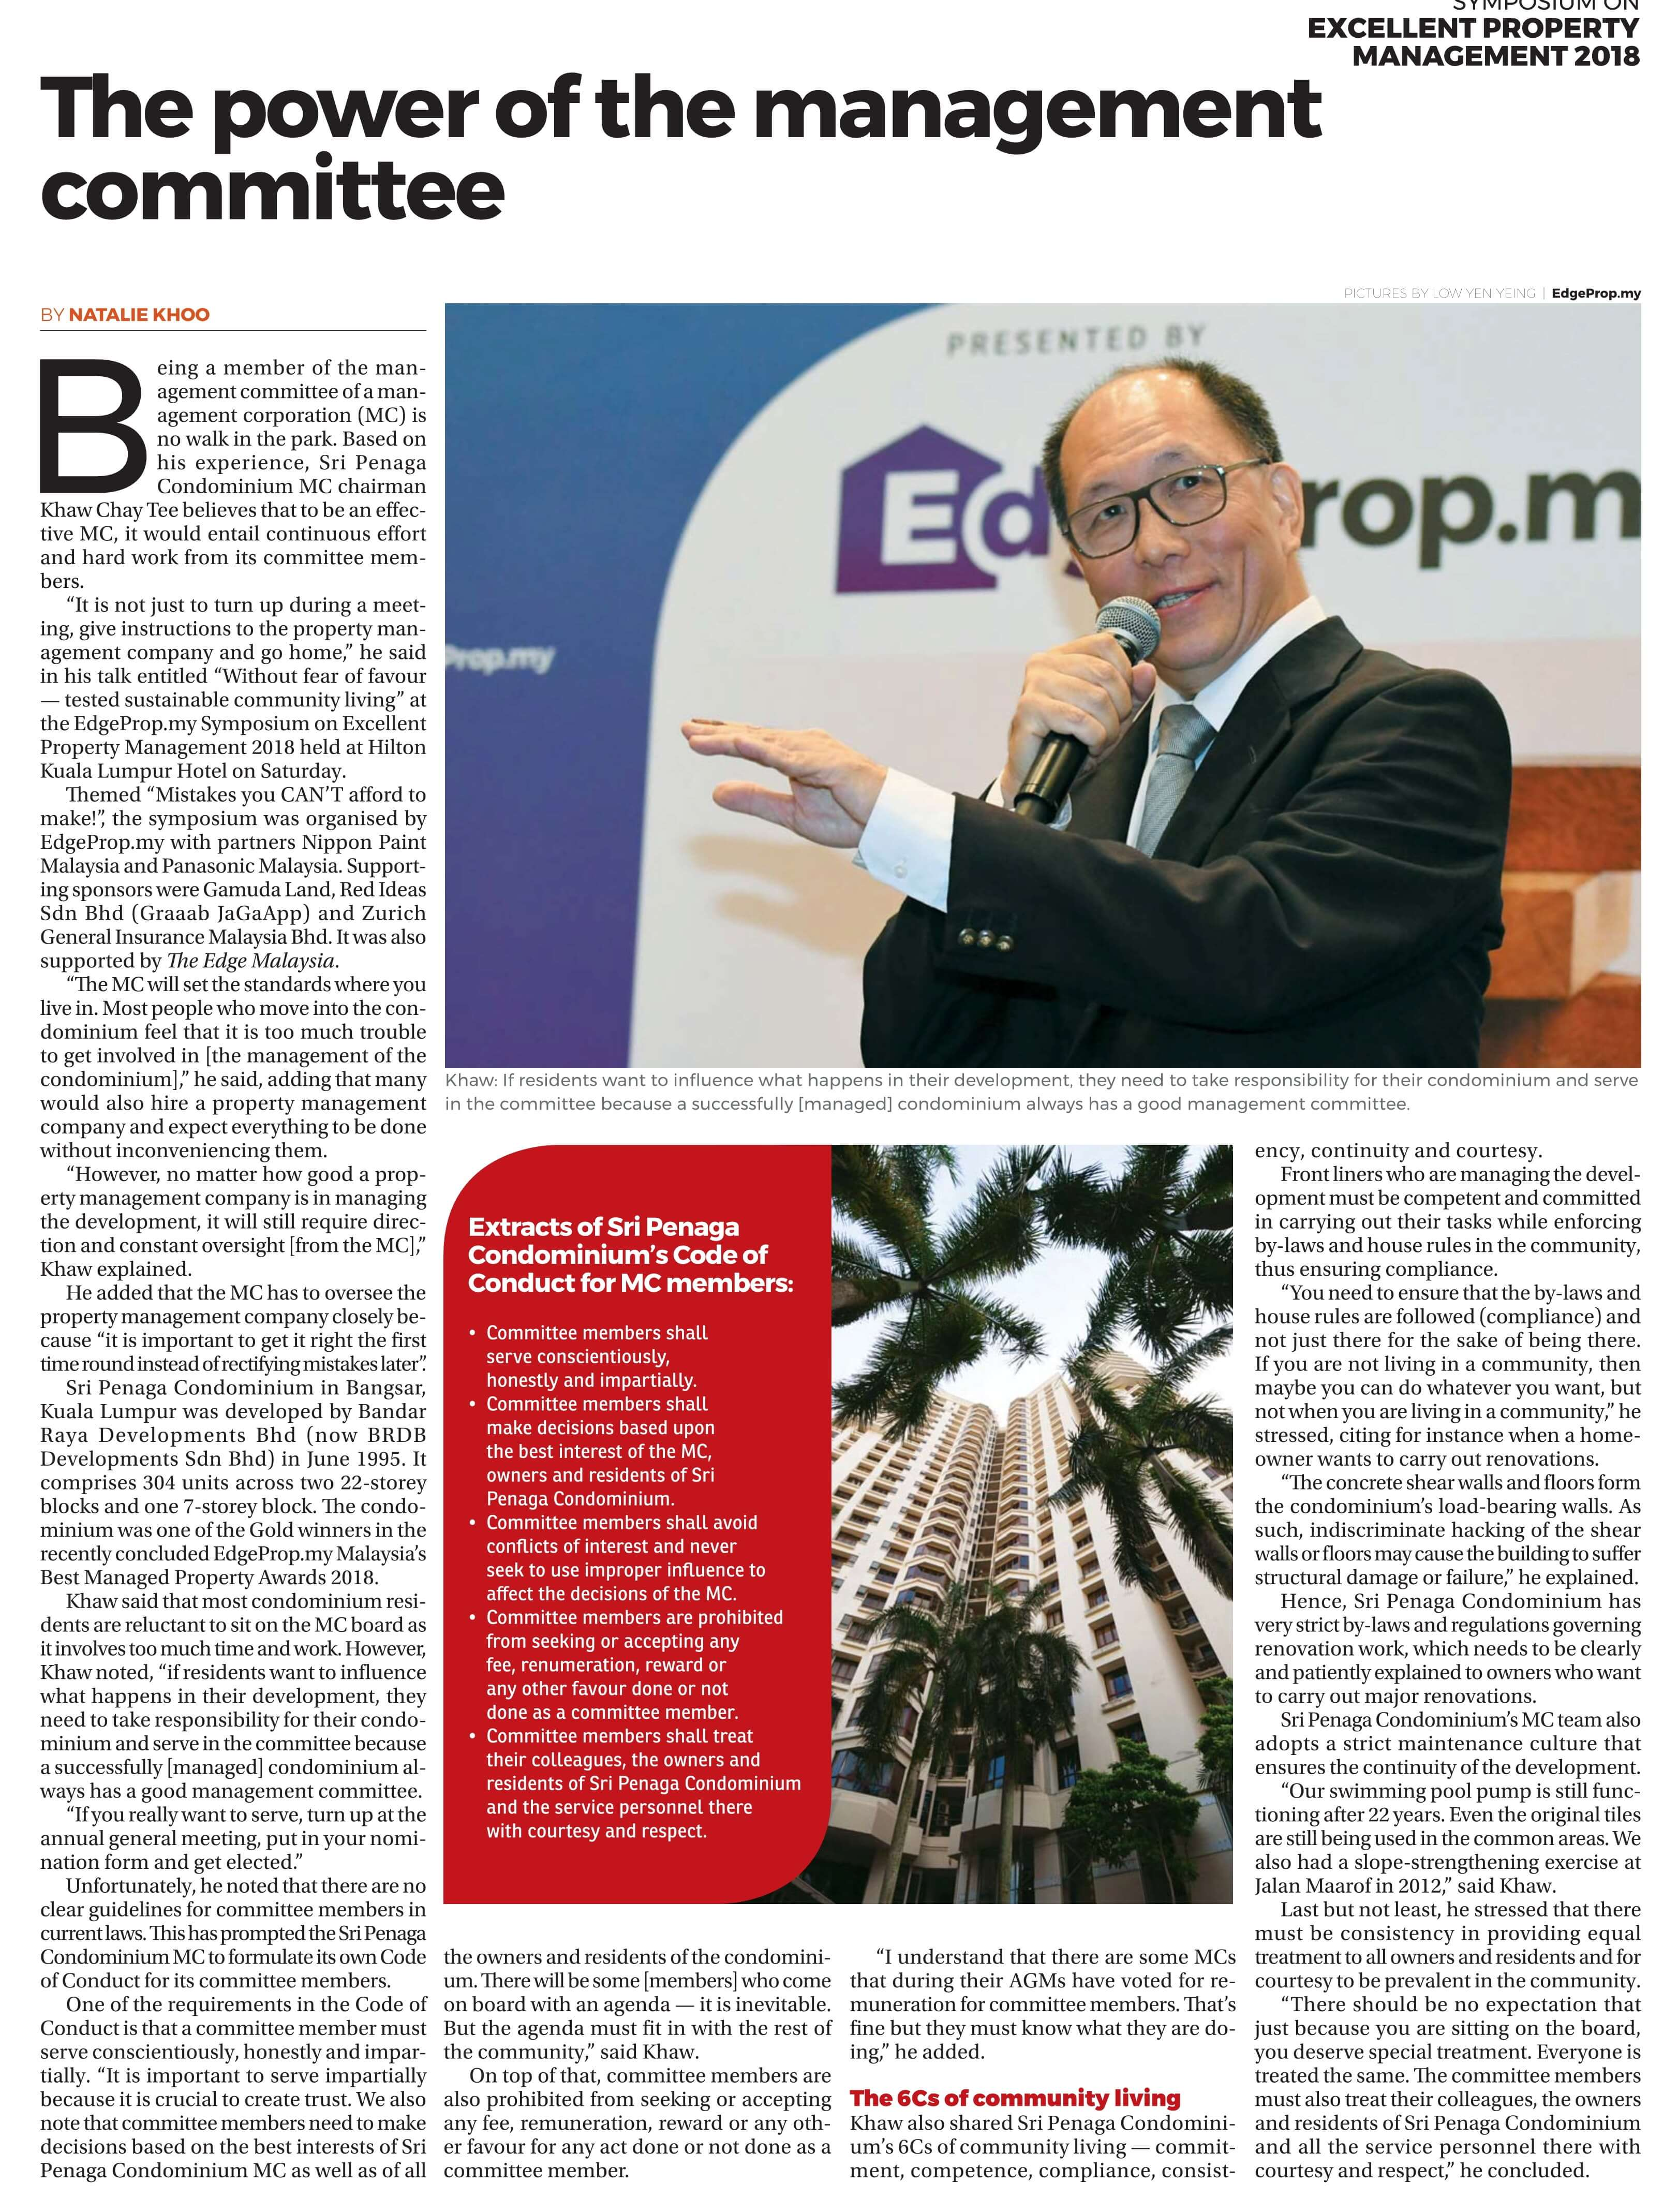 nippon paint management Article 2 nippon paint holdings, for the purpose of realizing the sustainable growth and medium/long-term enhancement of the corporate value of the nippon paint group by putting into practice its management philosophy, continues to enhance and strengthen corporate governance on an ongoing basis aiming to create a management mechanism that .